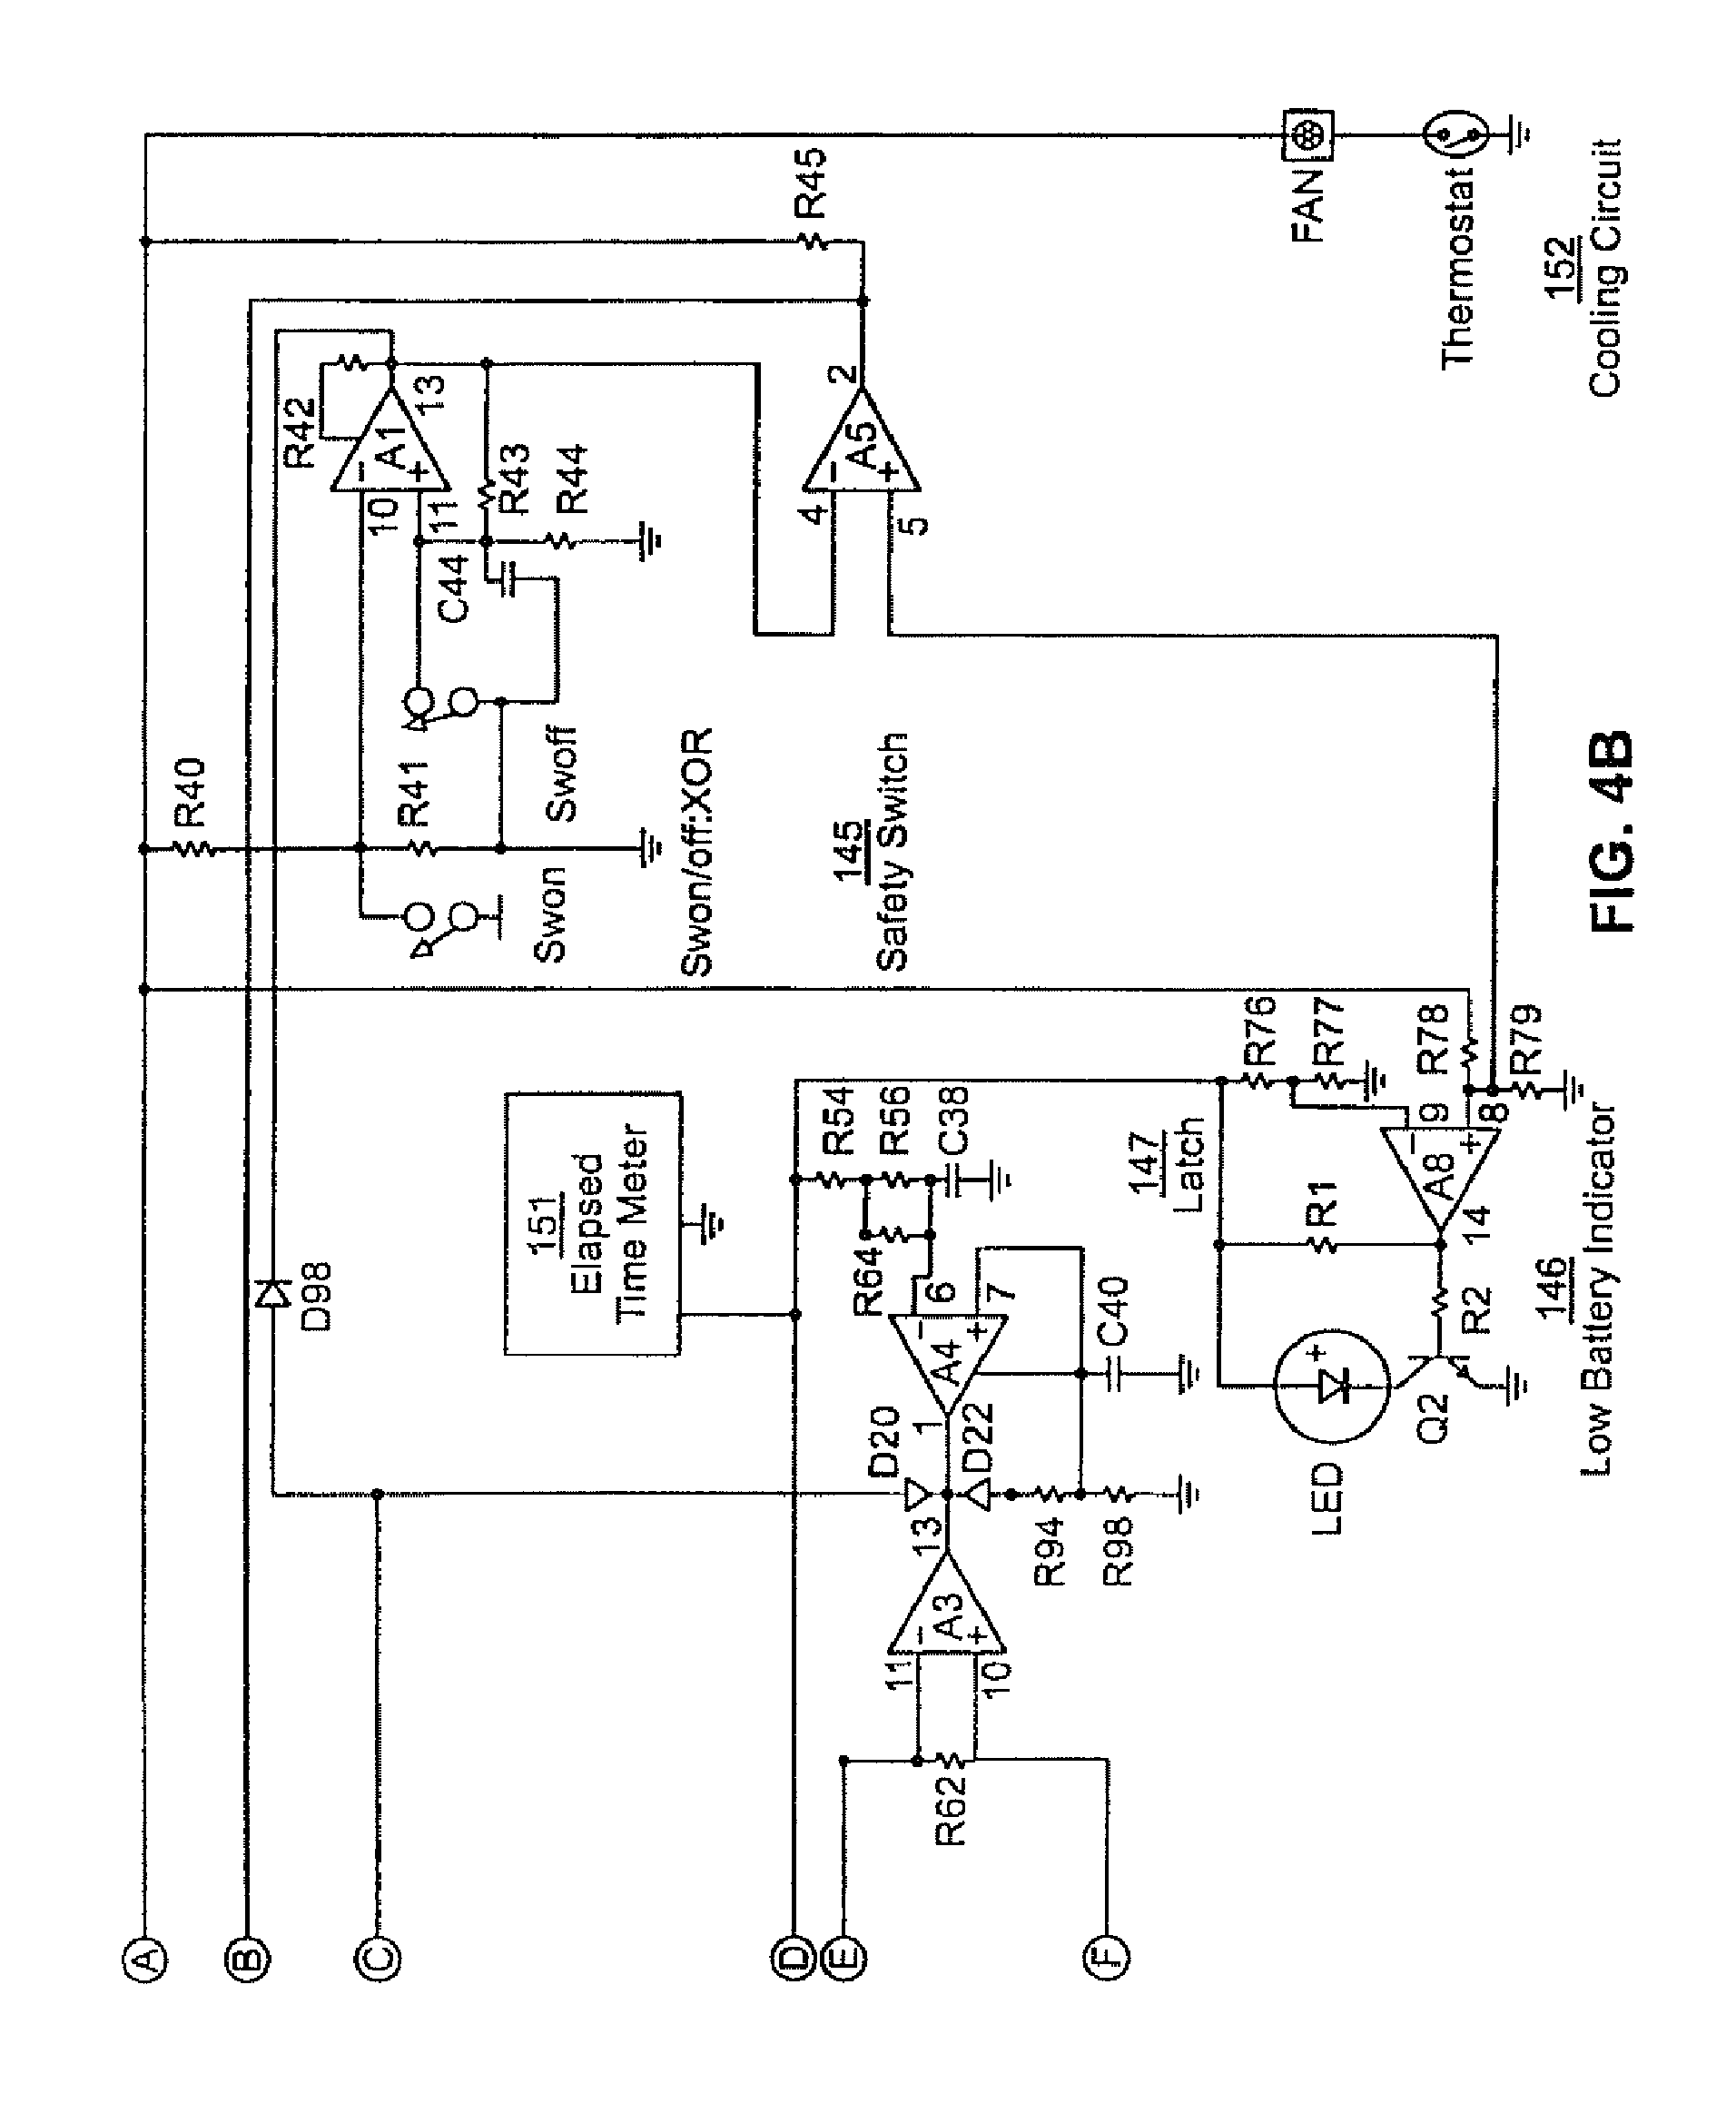 Patent Us8721105 Incapacitating High Intensity Incoherent Light Circuit Diagram Additionally Stun Gun Schematics Circuits Besides Drawing